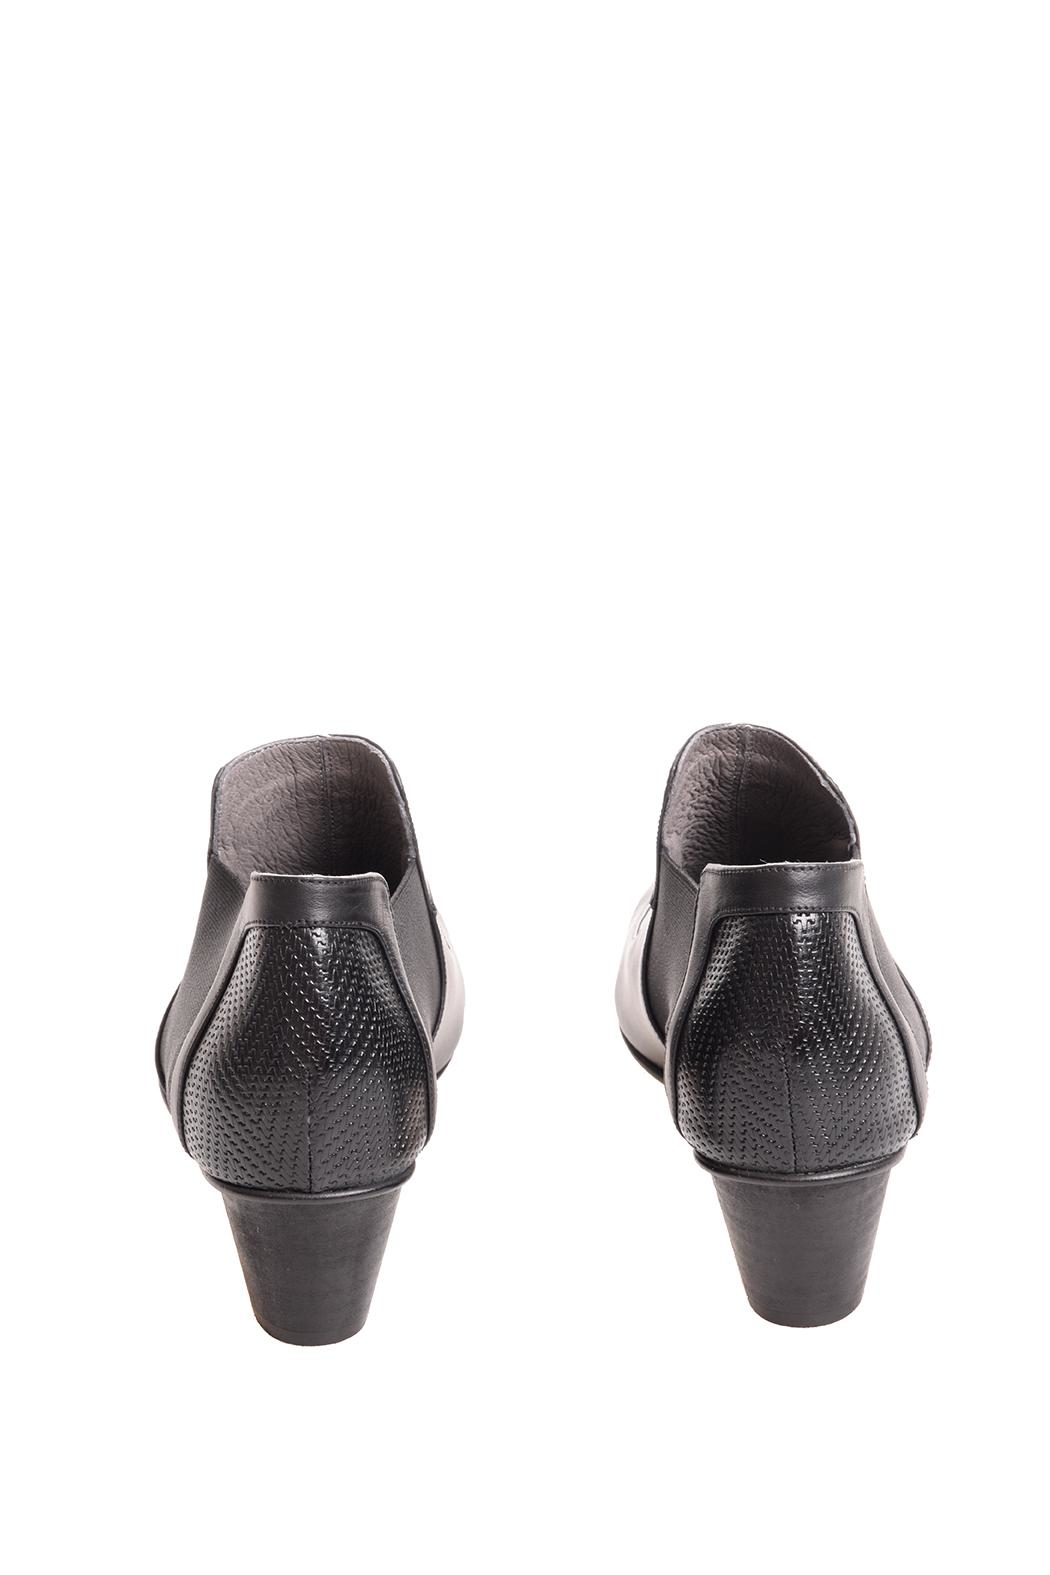 Bottega Bash Black Leather Booties - Side Cropped Image